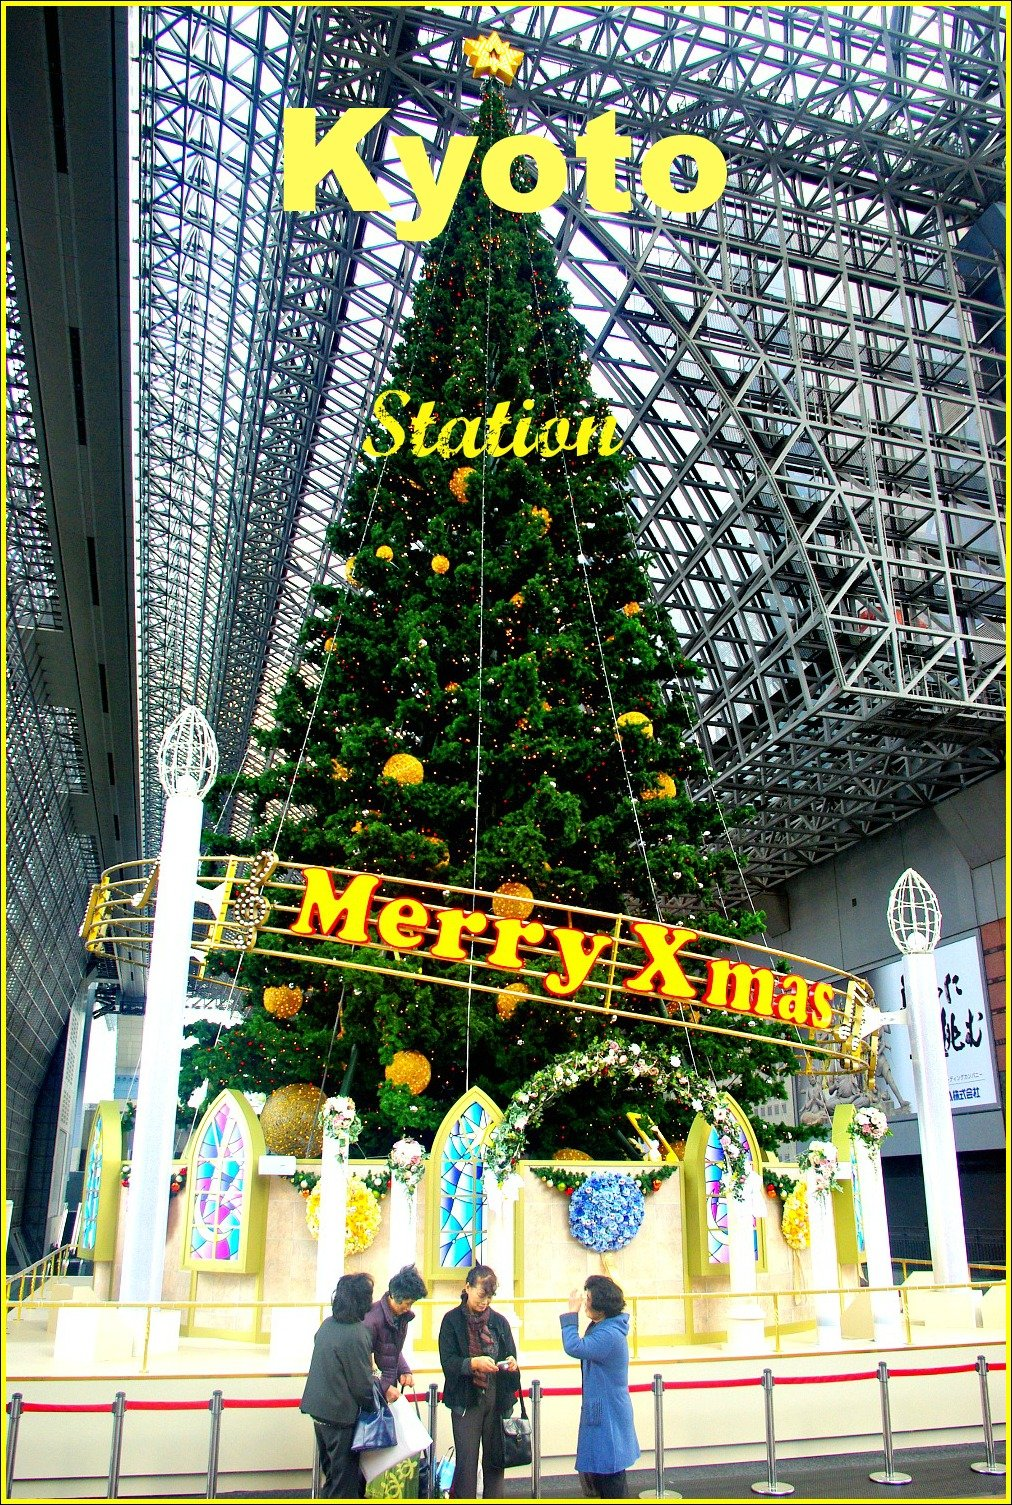 Kyoto Train Station Merry Xmas